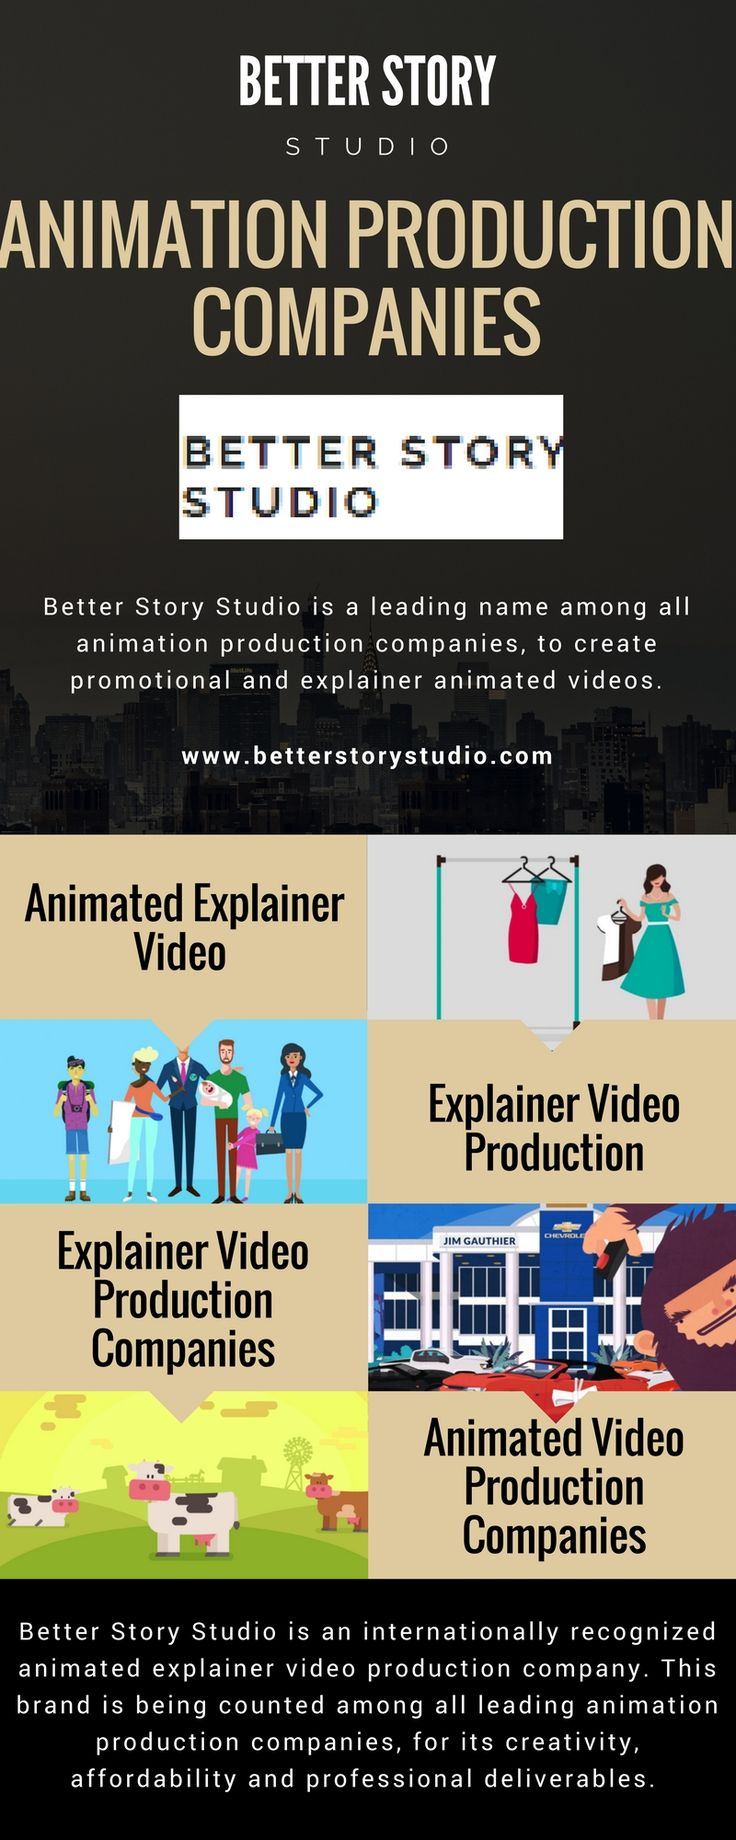 Better Story Studio gives you the best package for creating #animated #explainer #video, to promote your business, products or services. Start with this creative advertisement program.visit @http://betterstorystudio.com  #Animated #Explainer #Video